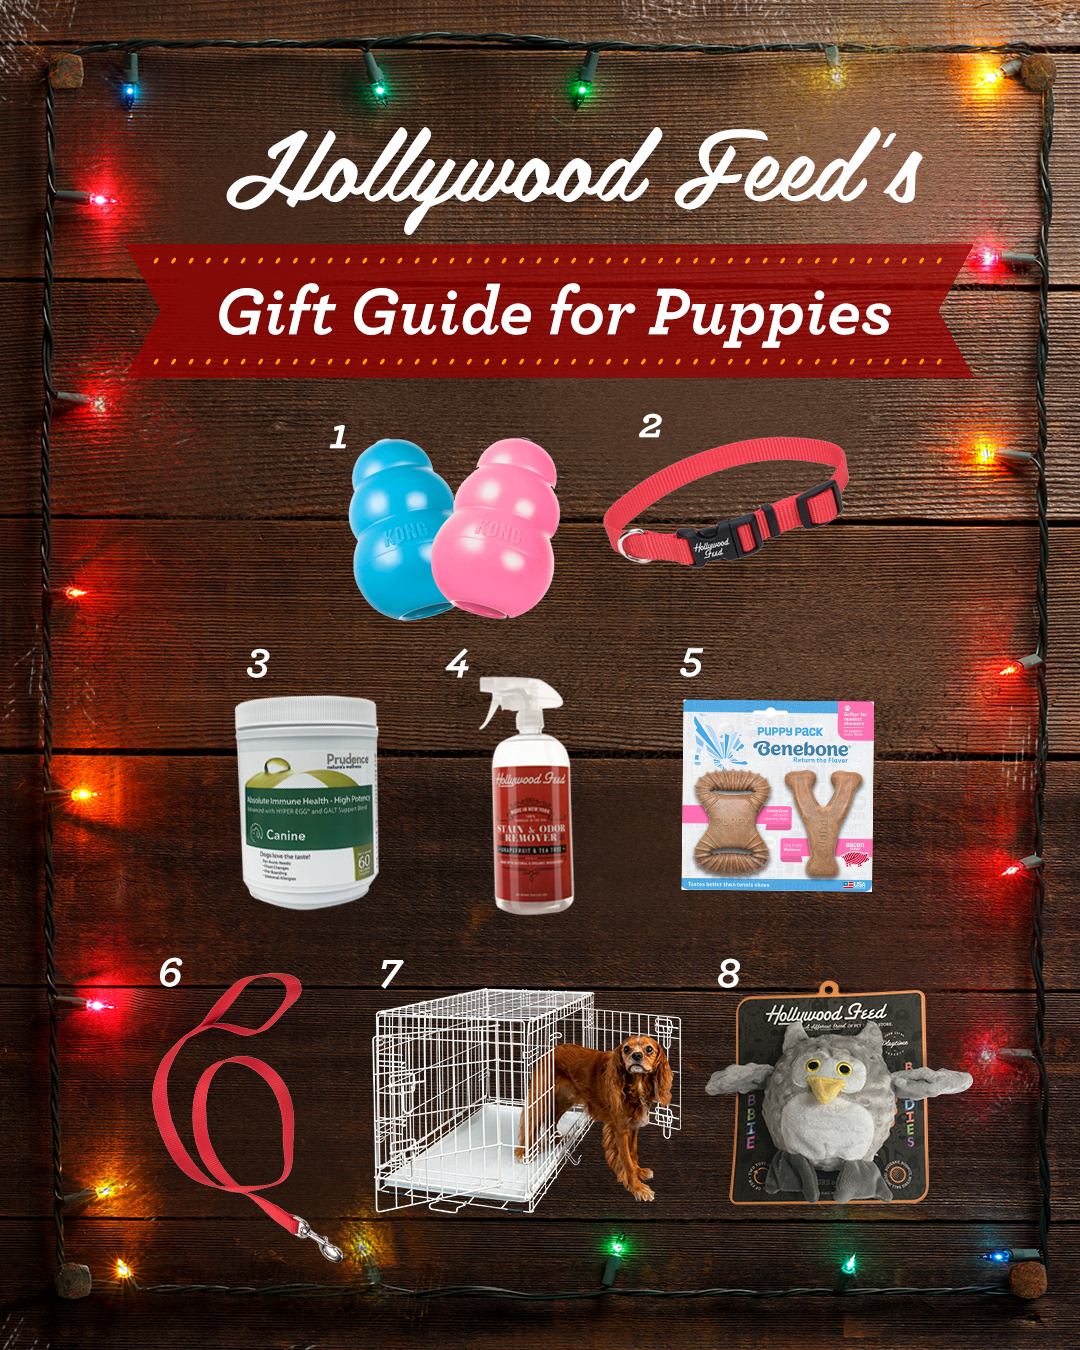 hollywood feed's gift guide for puppies